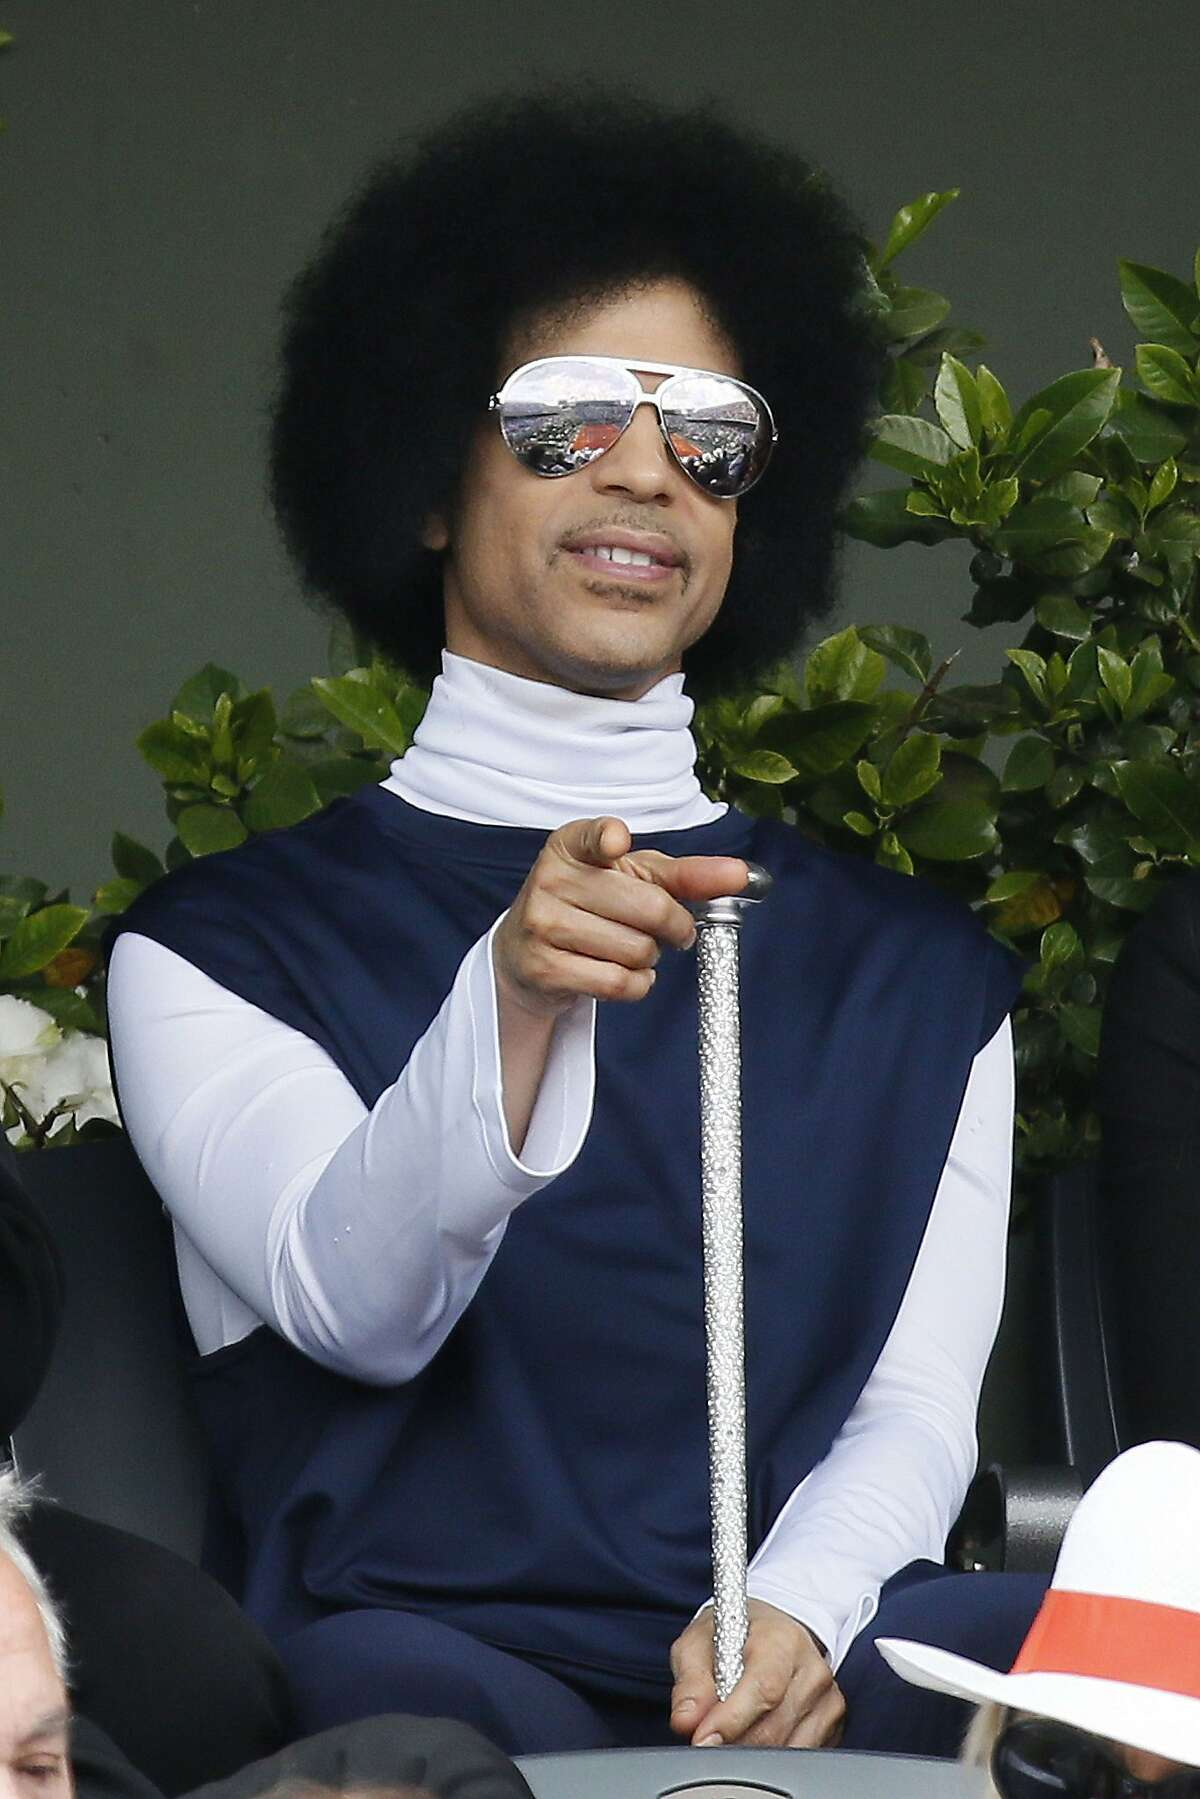 Prince was recently in Oakland to play a few shows and attend a funeral for a late protege. While here, he hit a few San Francisco hot spots.